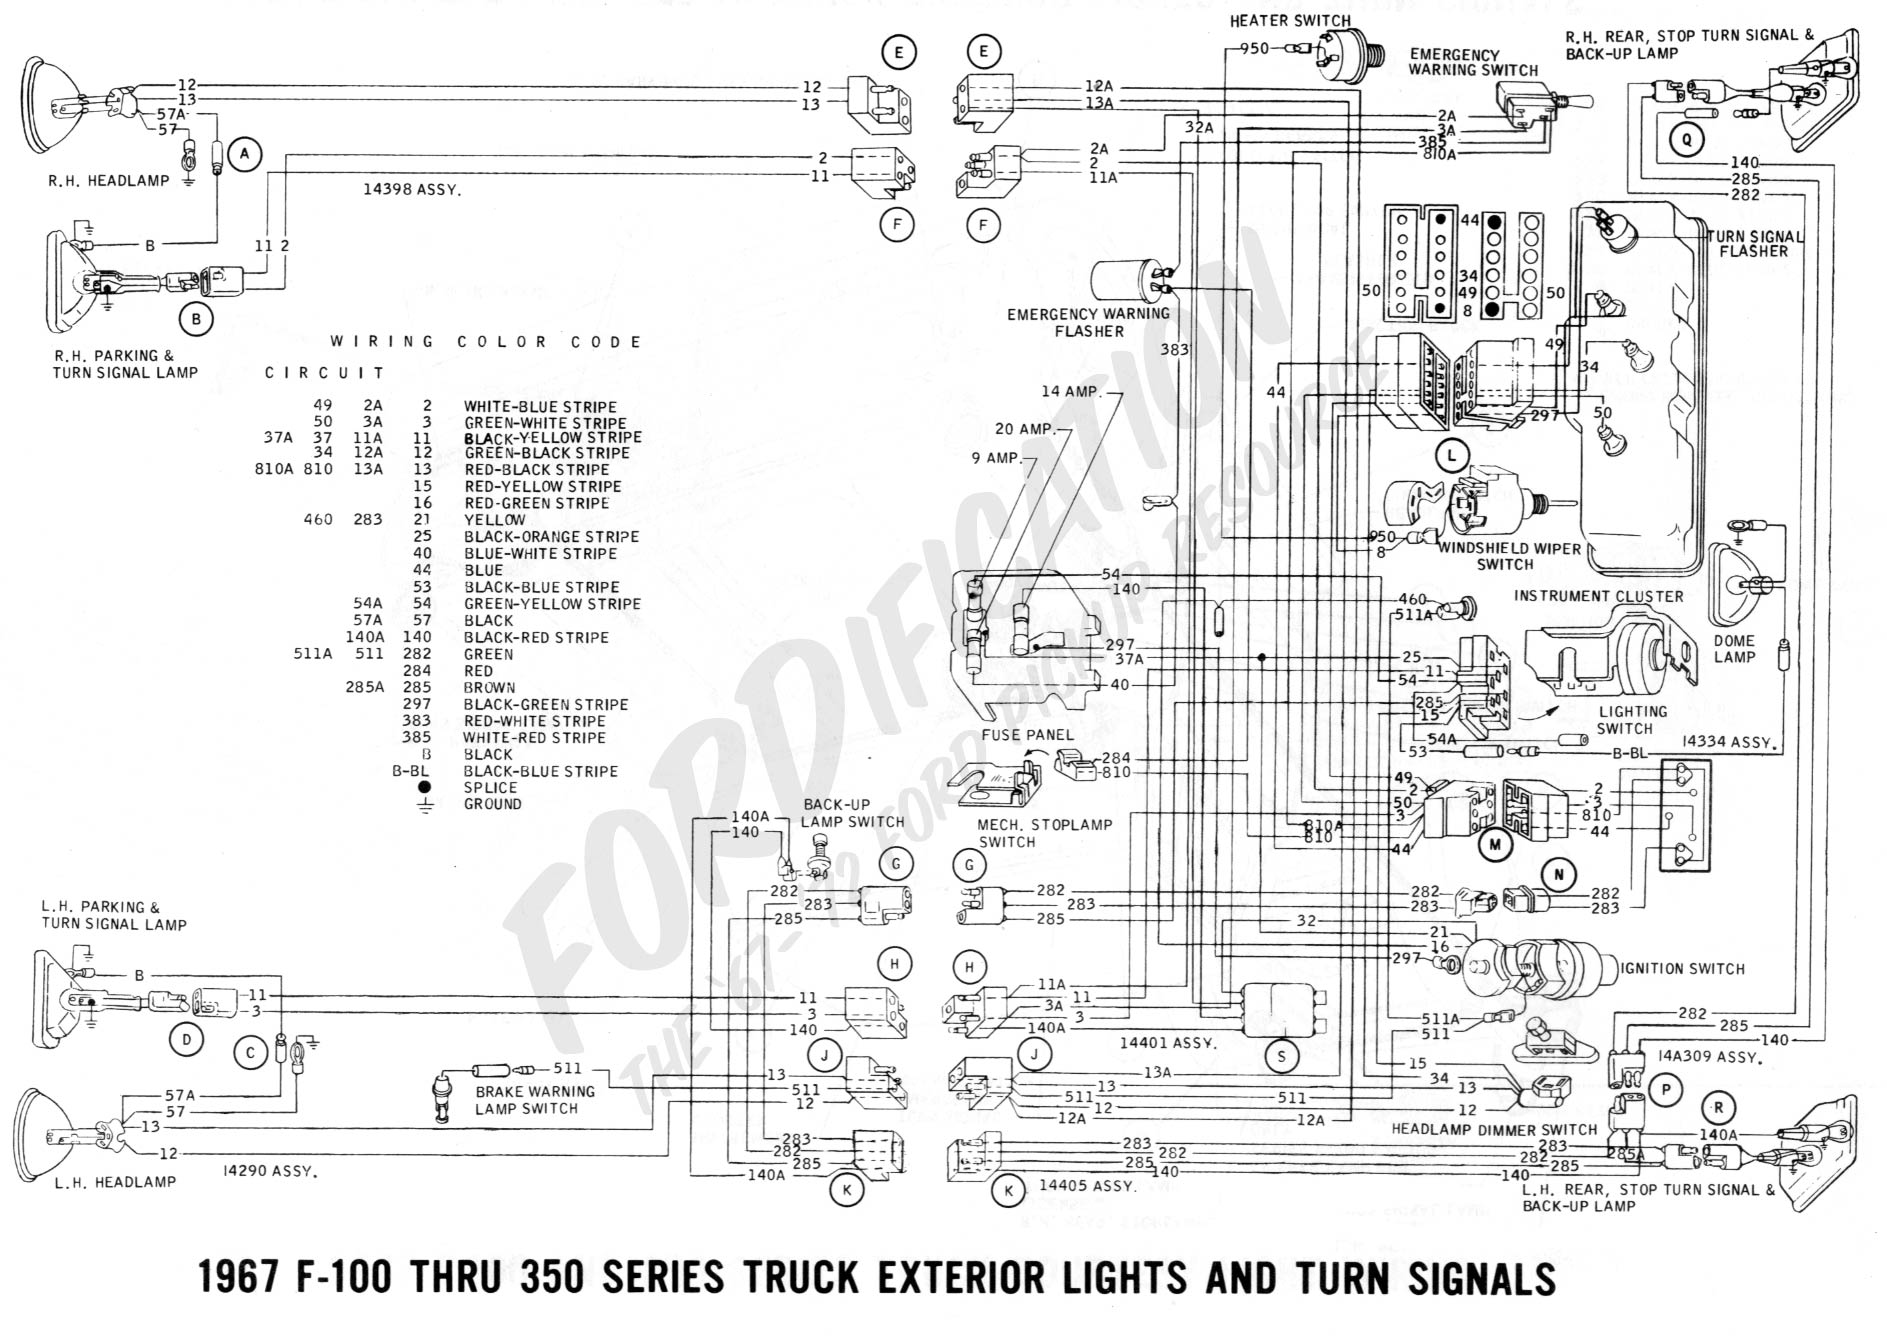 2002 Ford F750 Wiring Diagram For 2 Sd | Wiring Diagram  Sd Wiper Wiring Diagram on